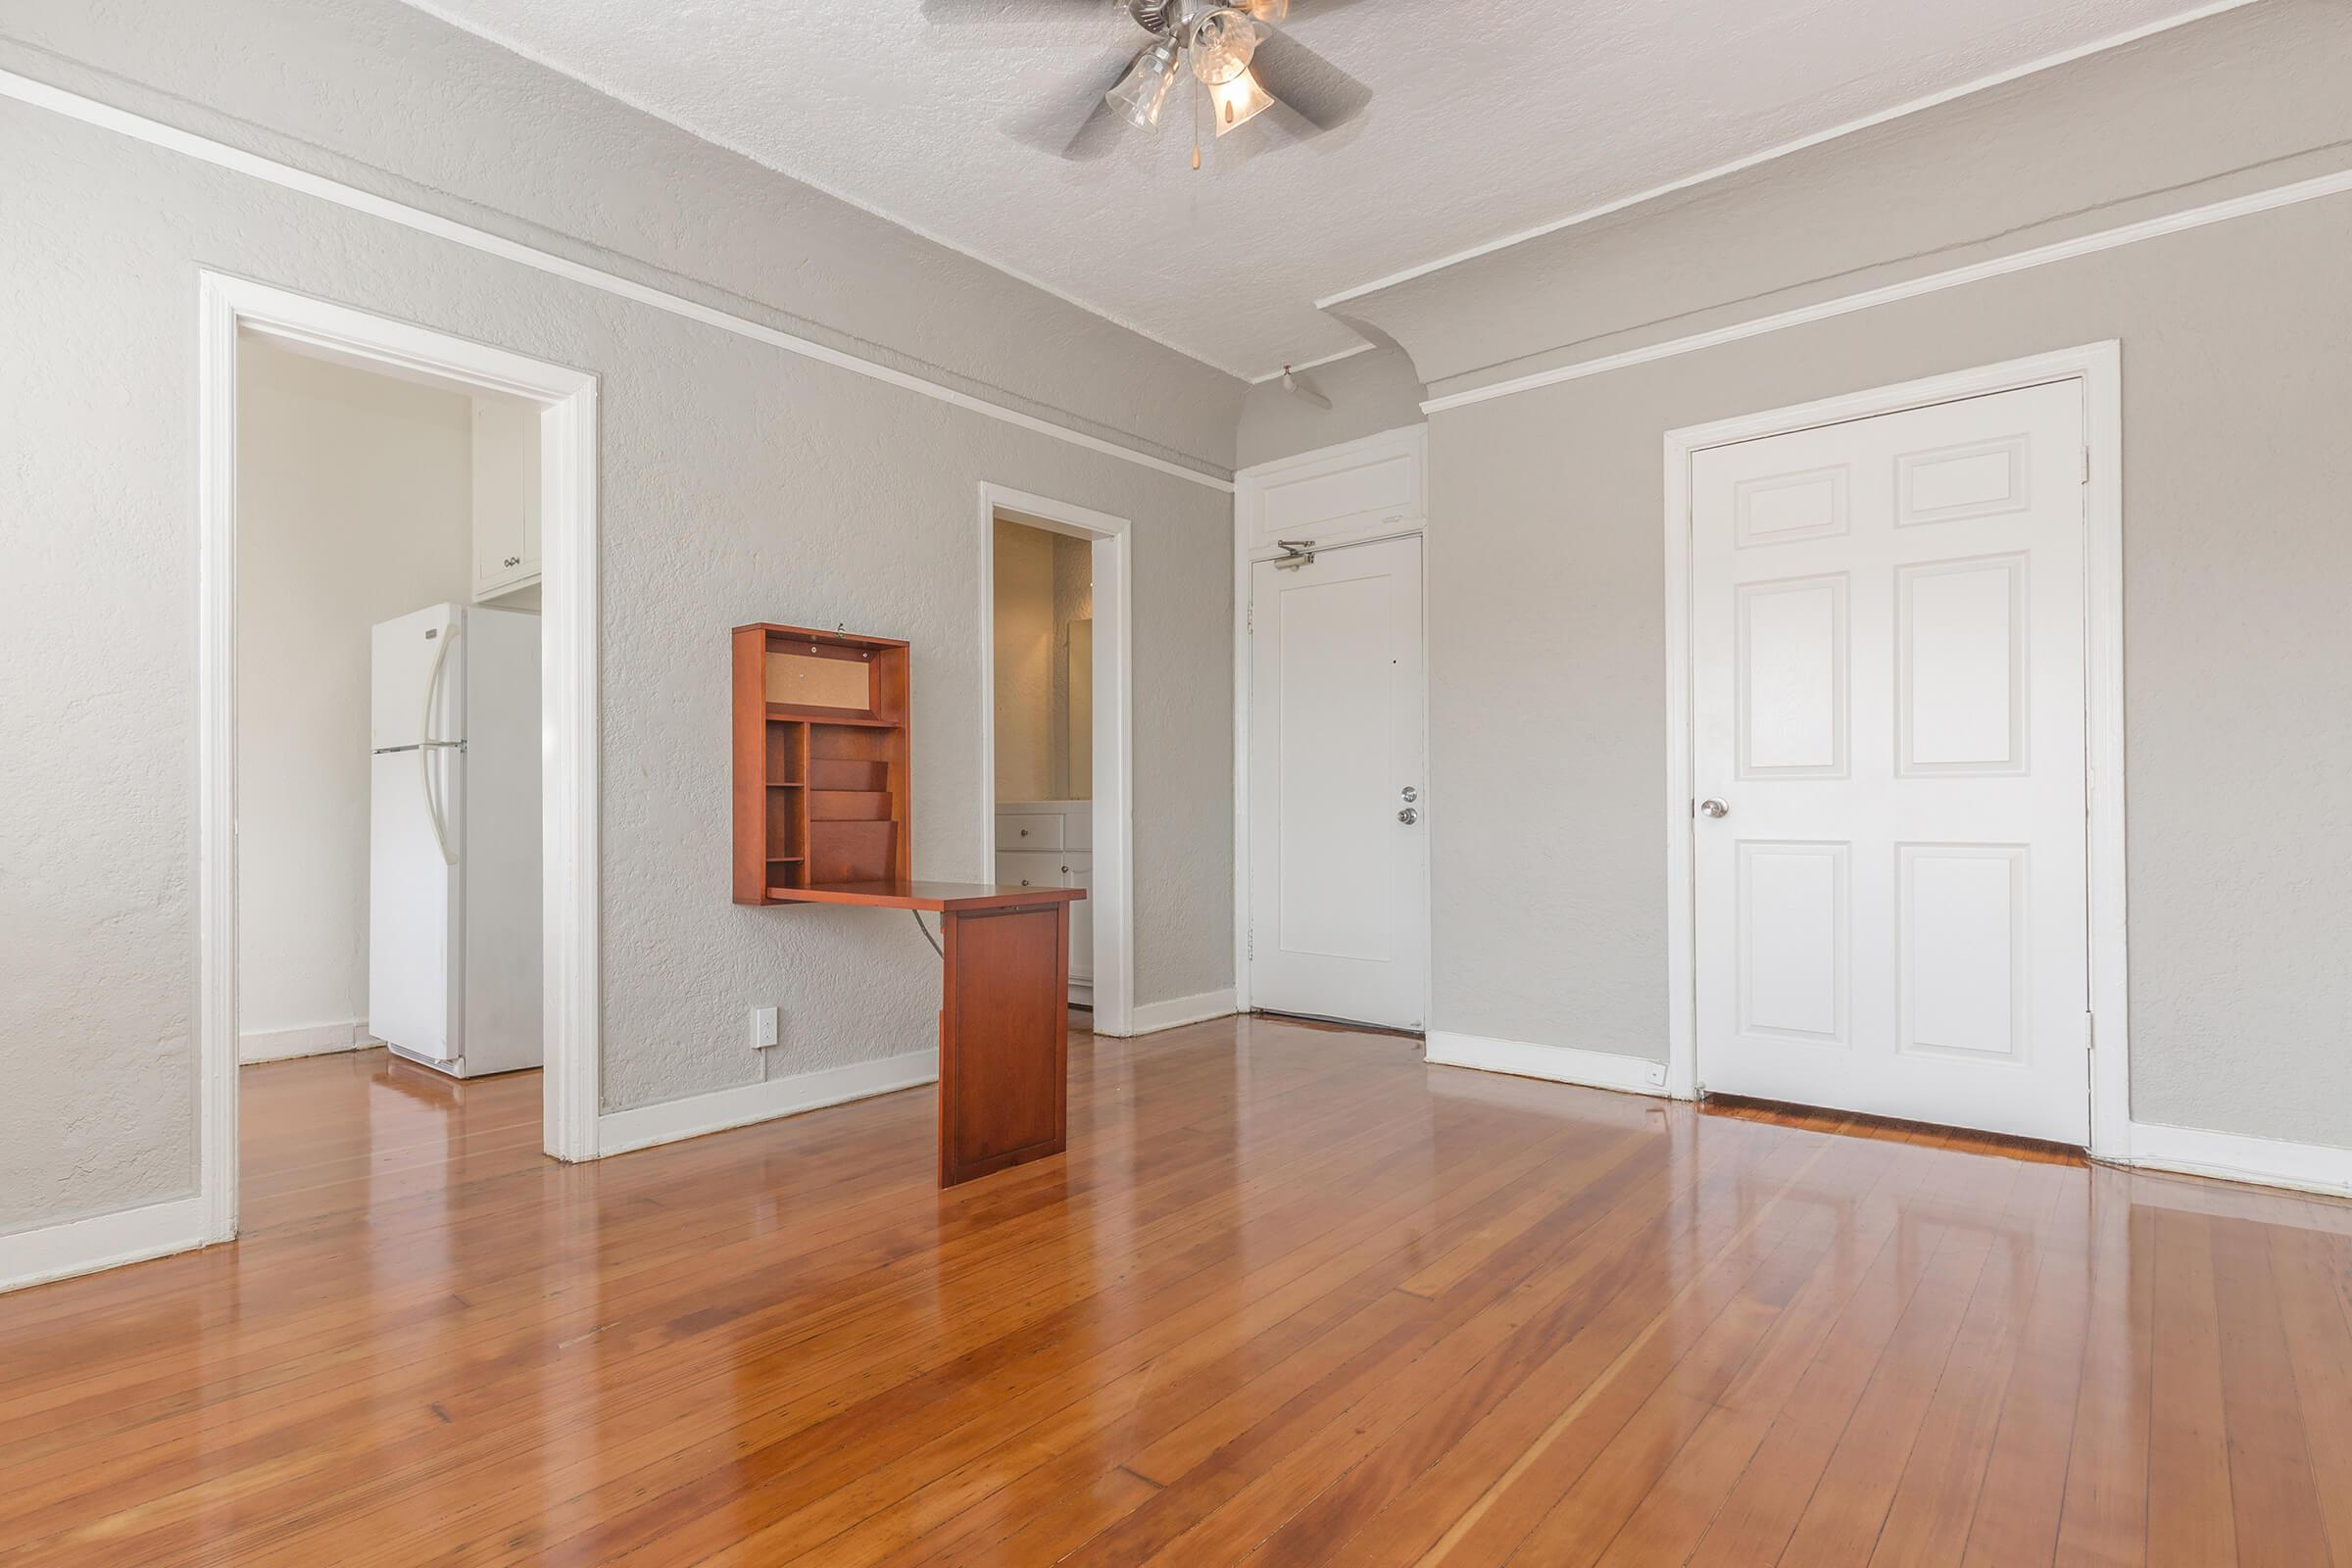 a room with a wooden floor